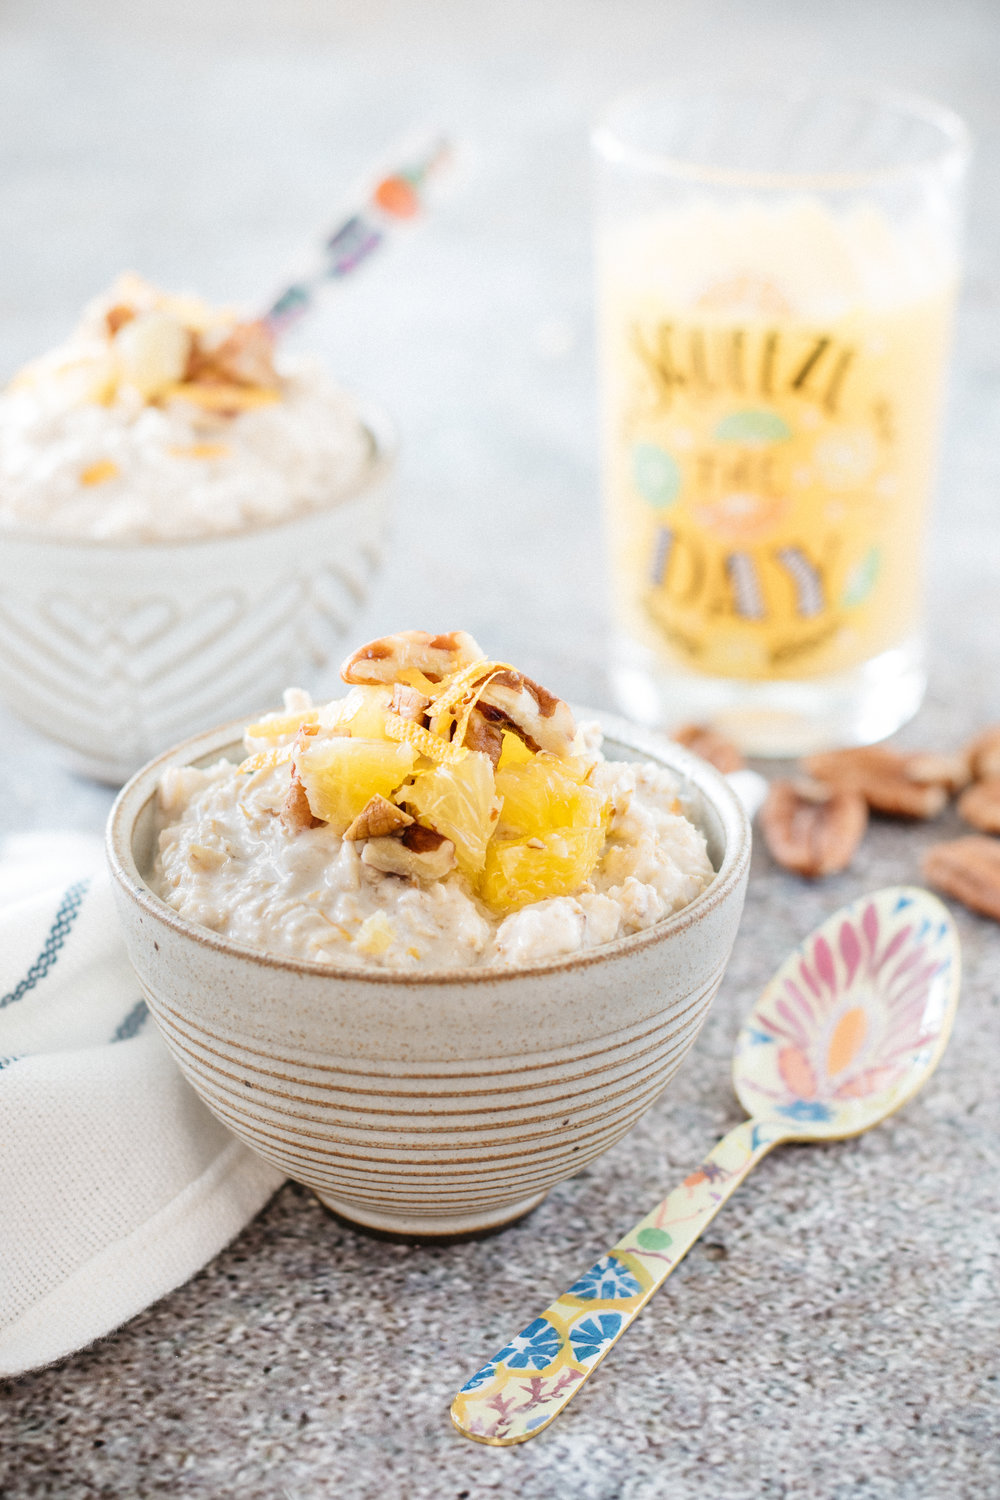 Overnight oats  à l'orange Photographie et stylisme culinaire : Hubert Cormier